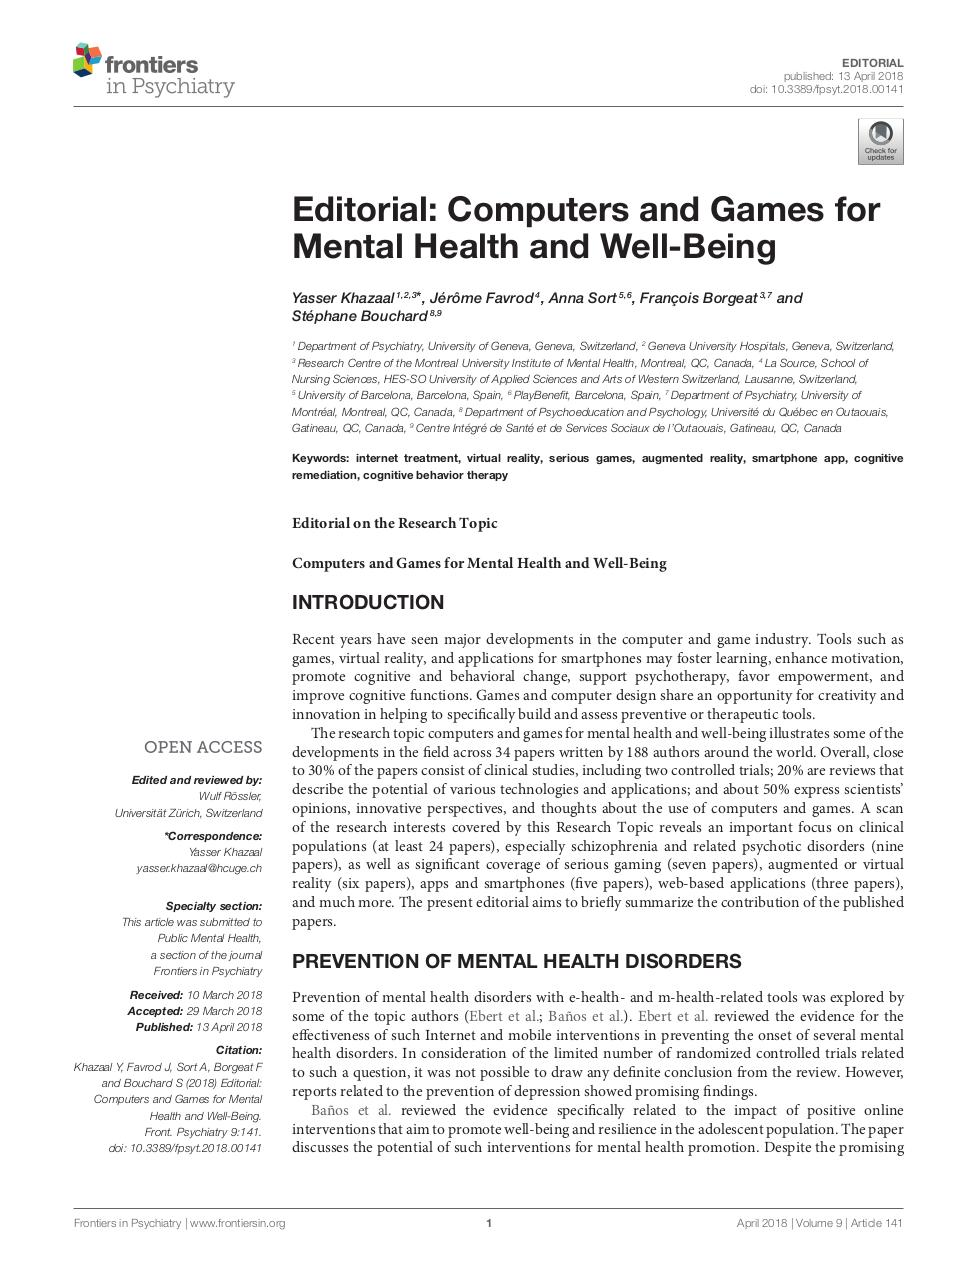 Editorial: Computers and Games for Mental Health and Well